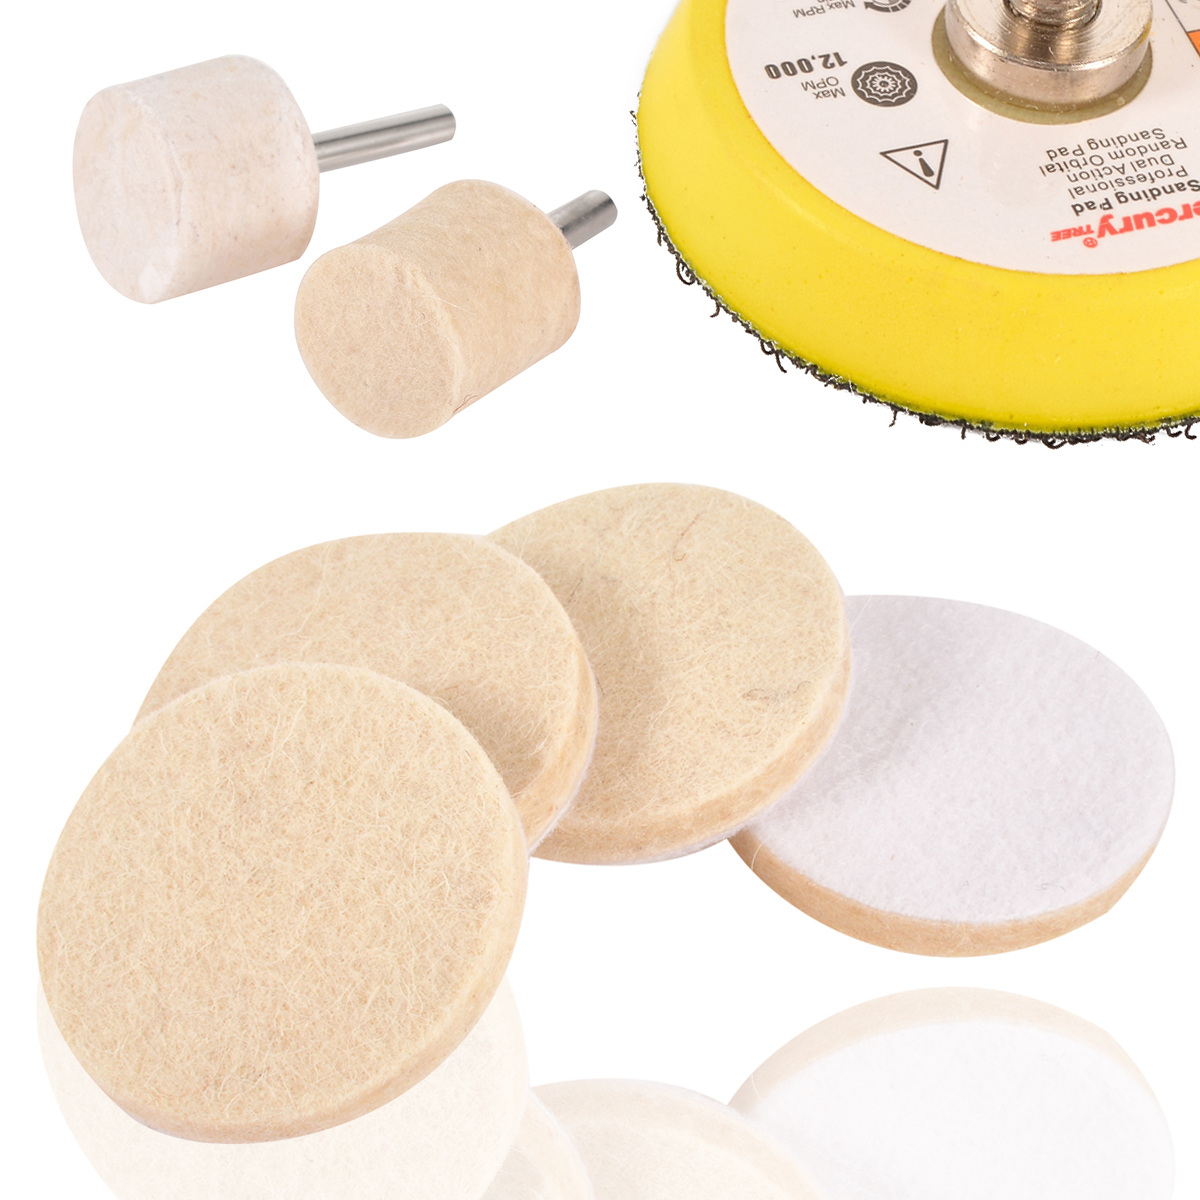 Wool Felt Polishing Pad/wheel Kit Tool 150/320/600/1000/3000 Grit Sanding Discs Responsible Glass Polishing Set 8 Oz Cerium Oxide Powder